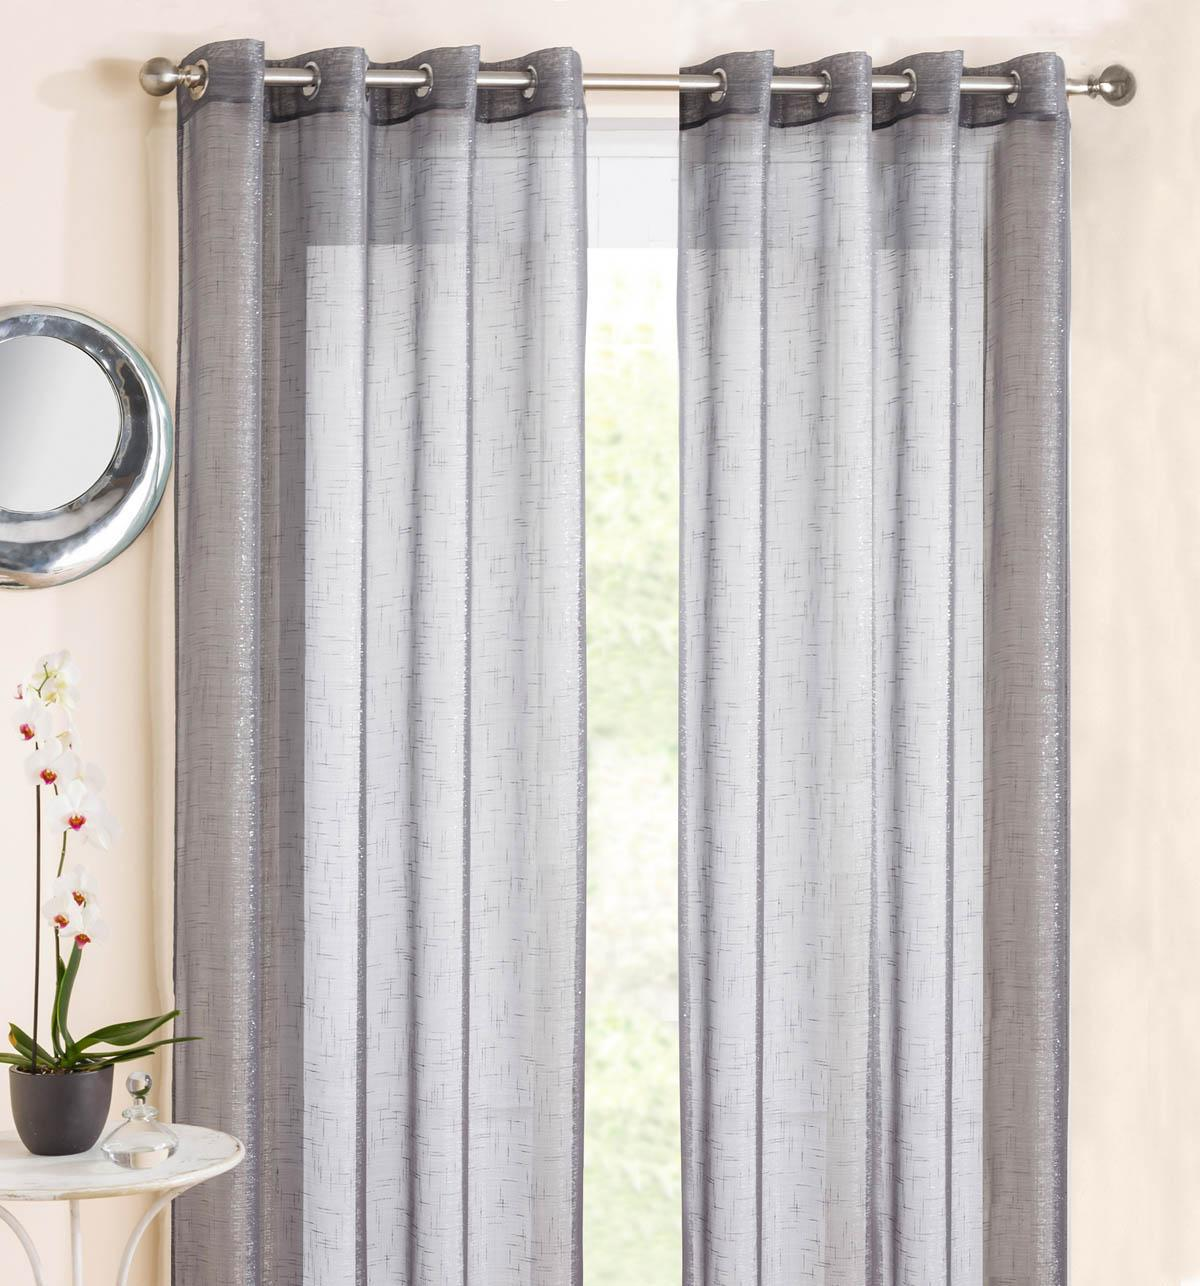 Tyrone Ready Made Curtains Marrakesh Eyelet Voile Panel Grey Picture